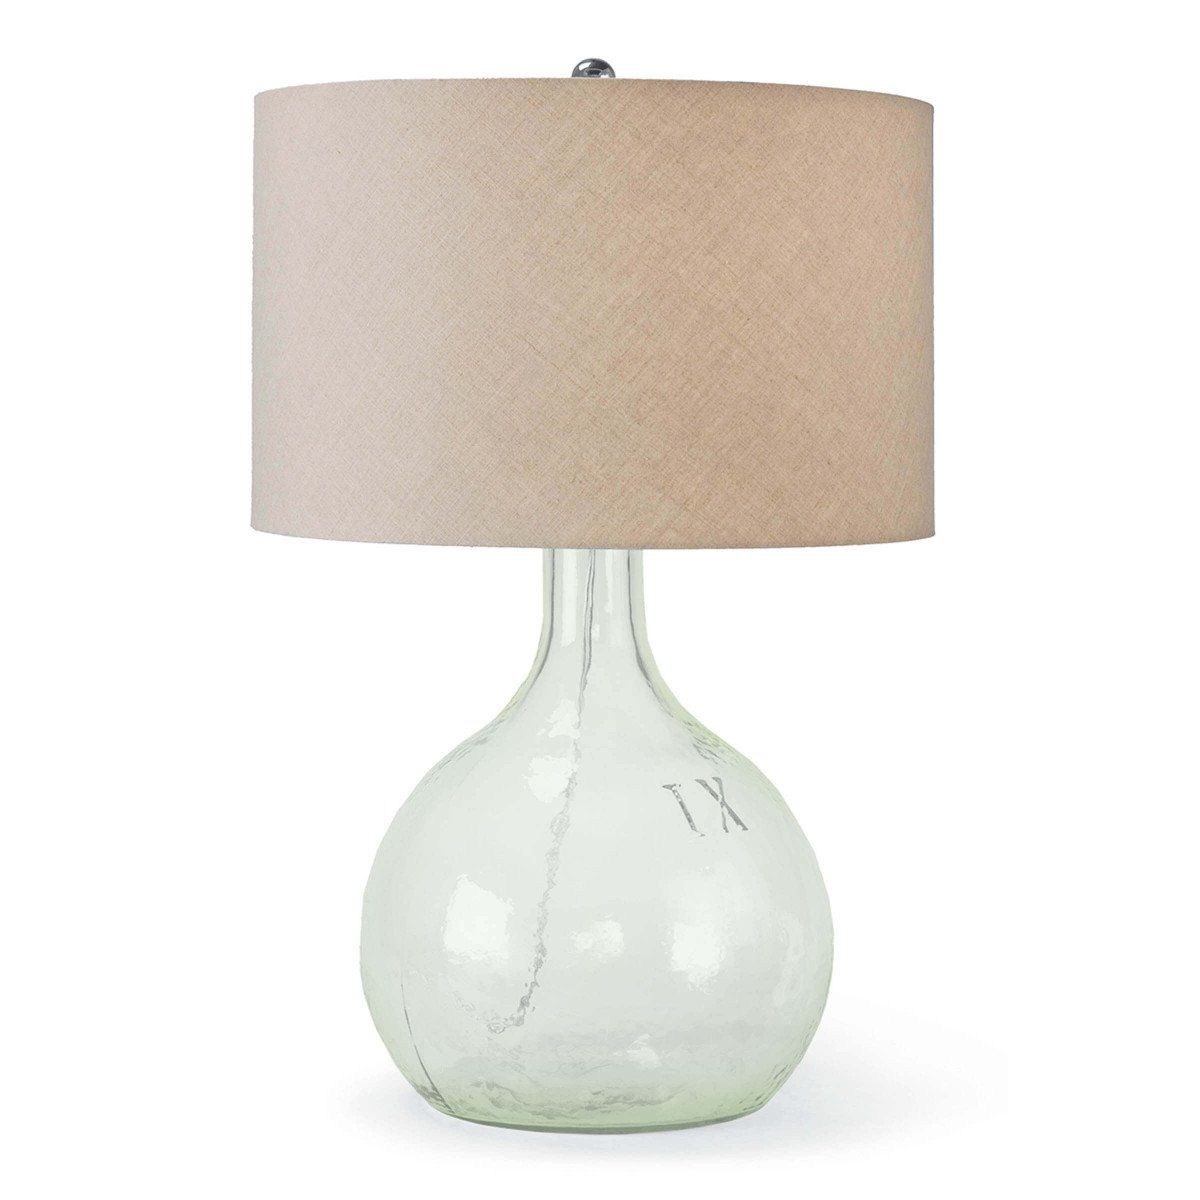 King Nine Lamp In 2020 Lamp Table Lamp Transitional Table Lamps